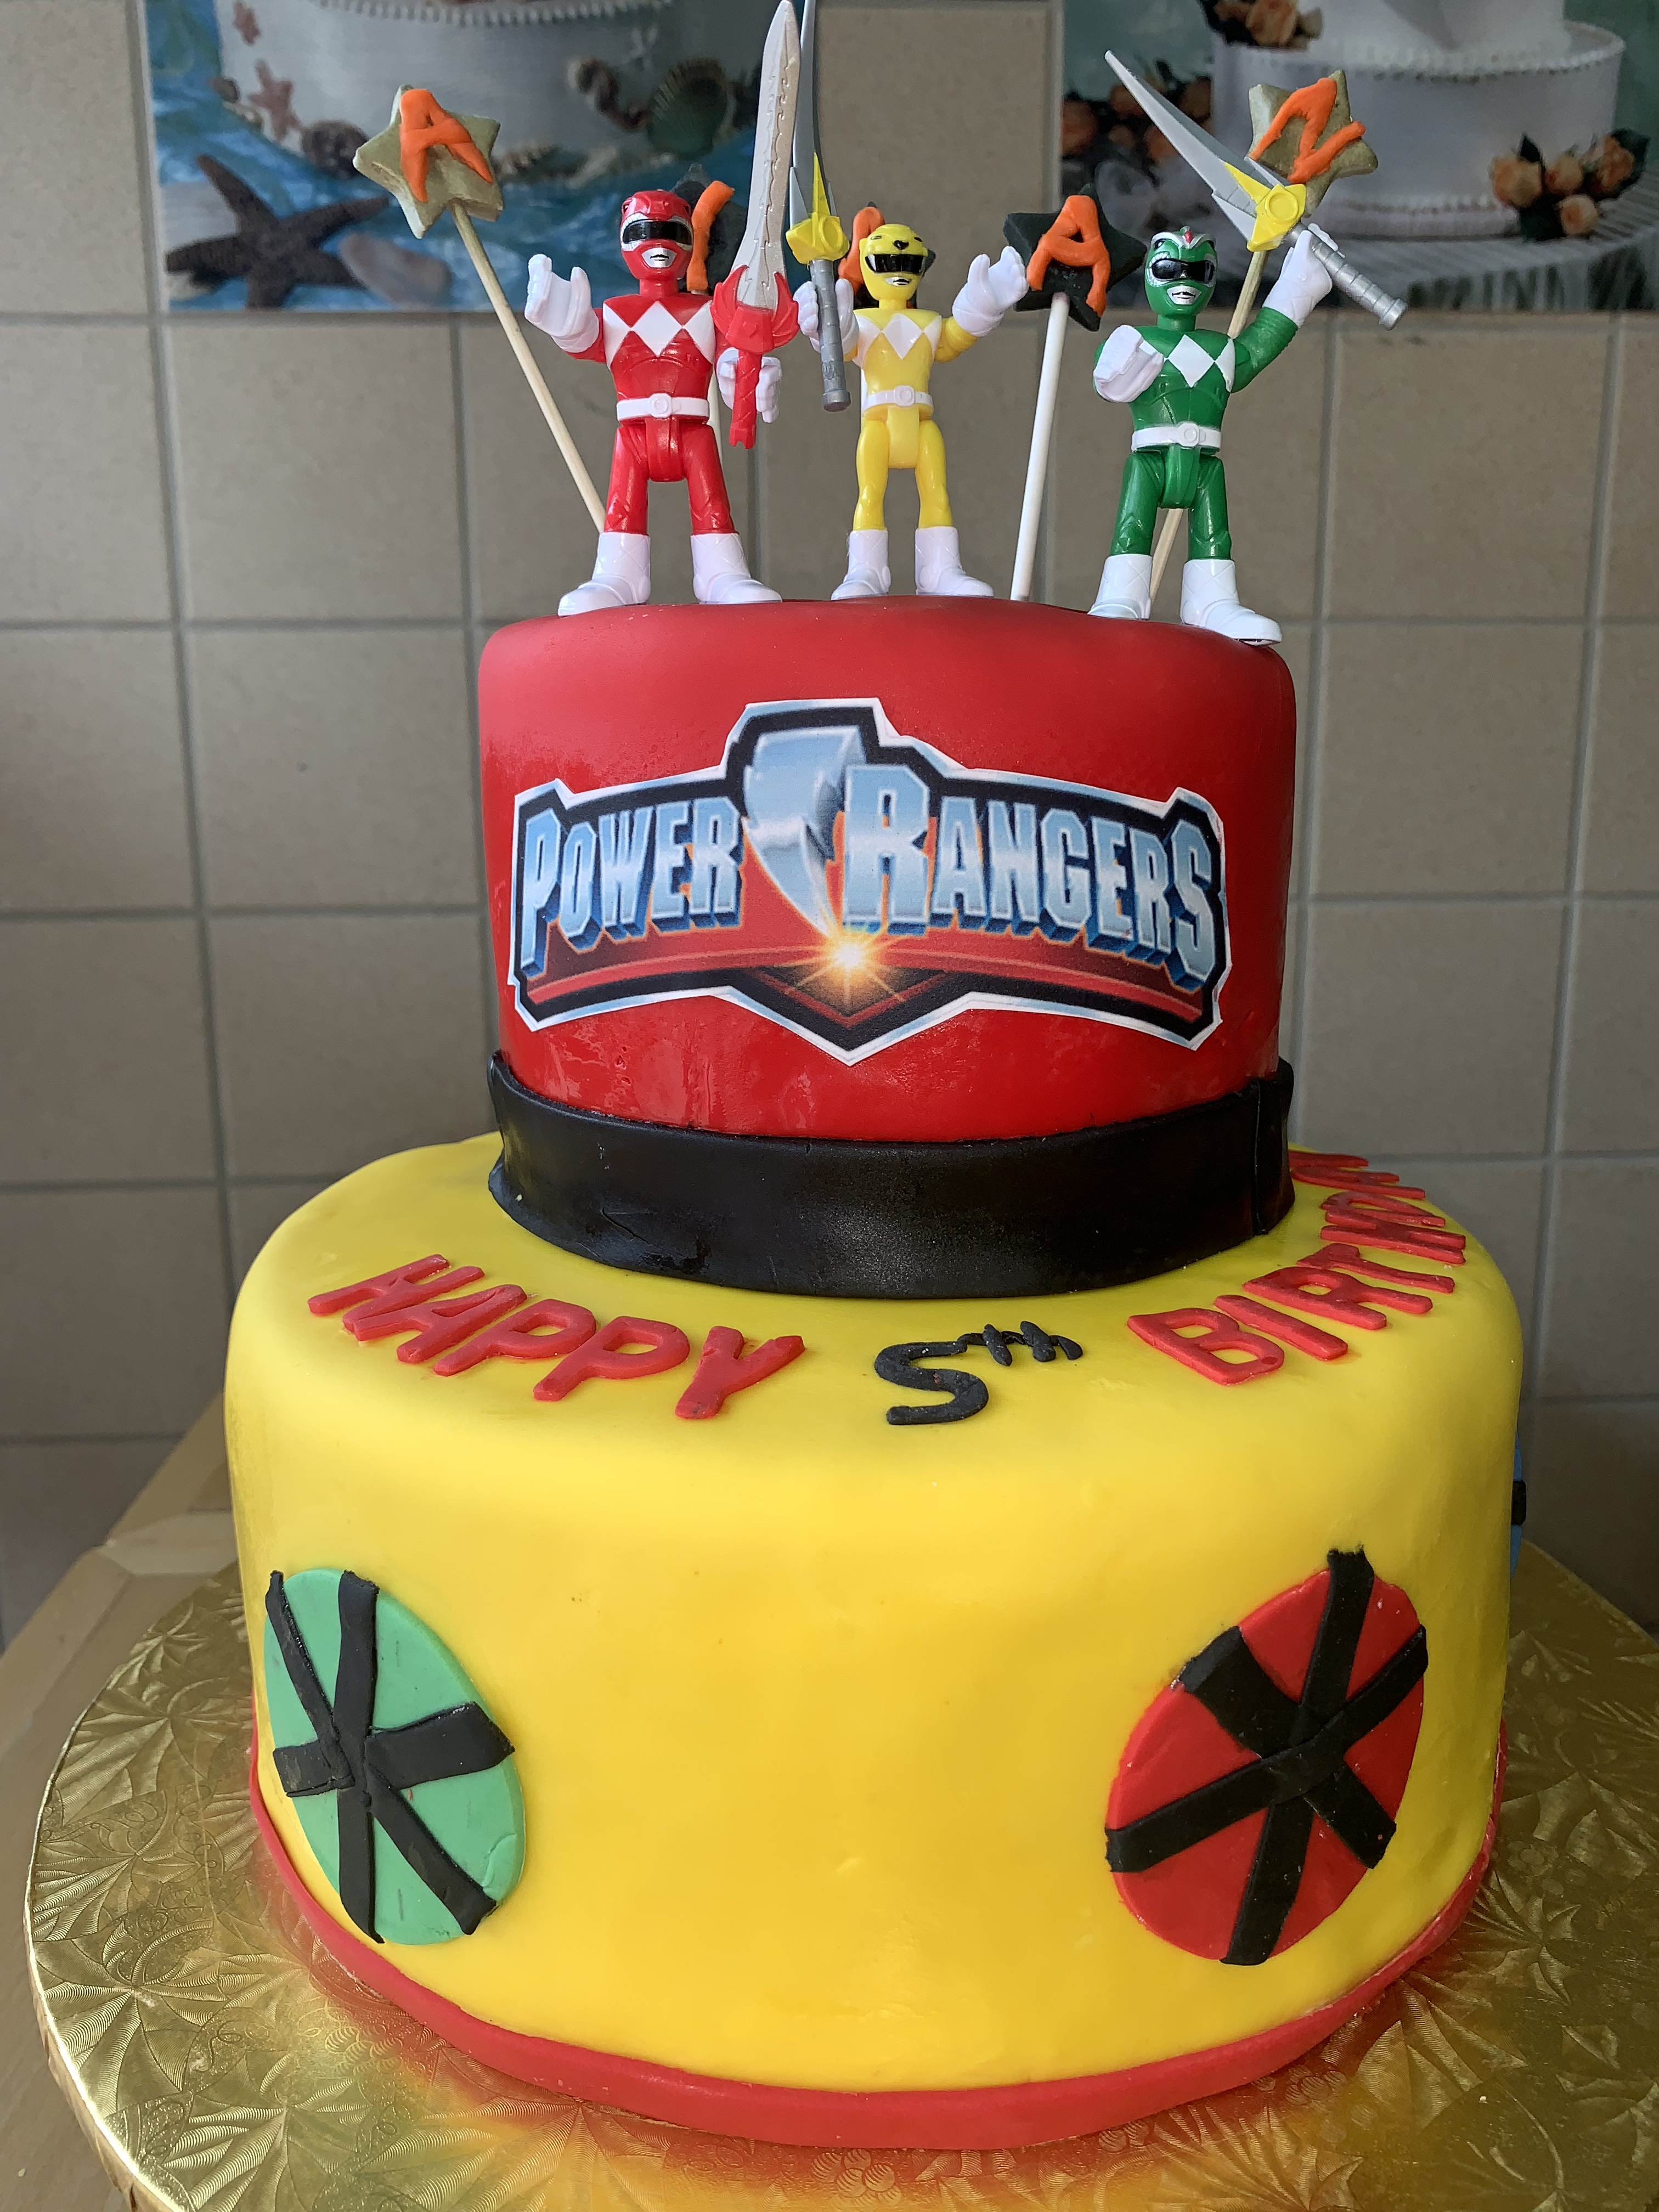 Pleasing Power Rangers 5Th Birthday Cake Wild Berries Bakery And Cafe Funny Birthday Cards Online Alyptdamsfinfo